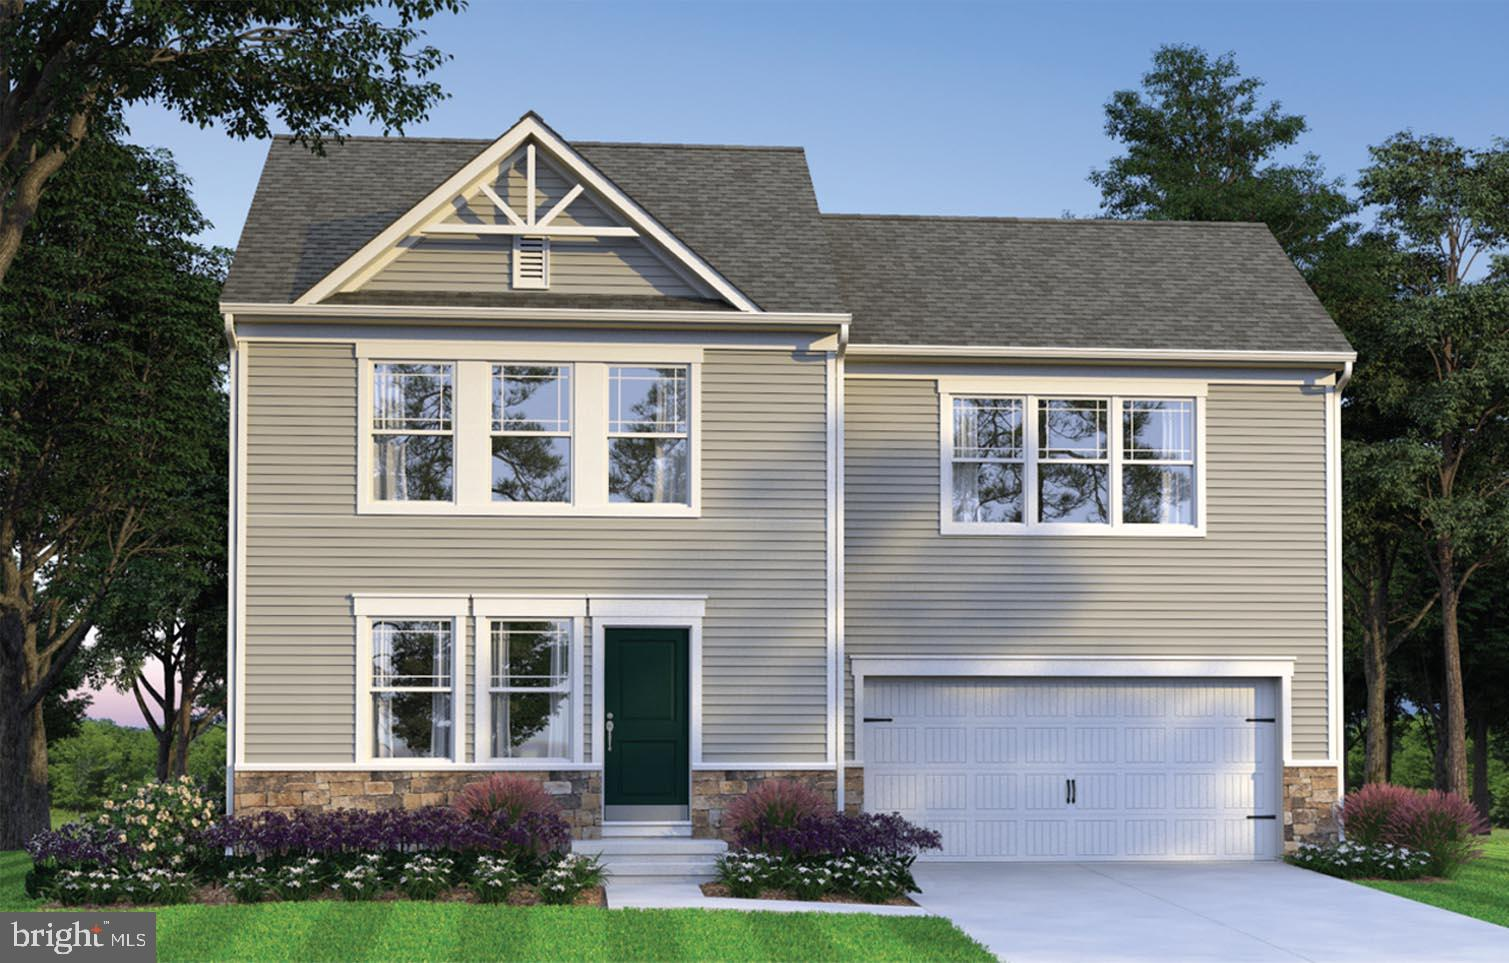 The Pearl is a beautiful 4 bedrooms, 2.5 bathrooms colonial style home with an open floor plan that